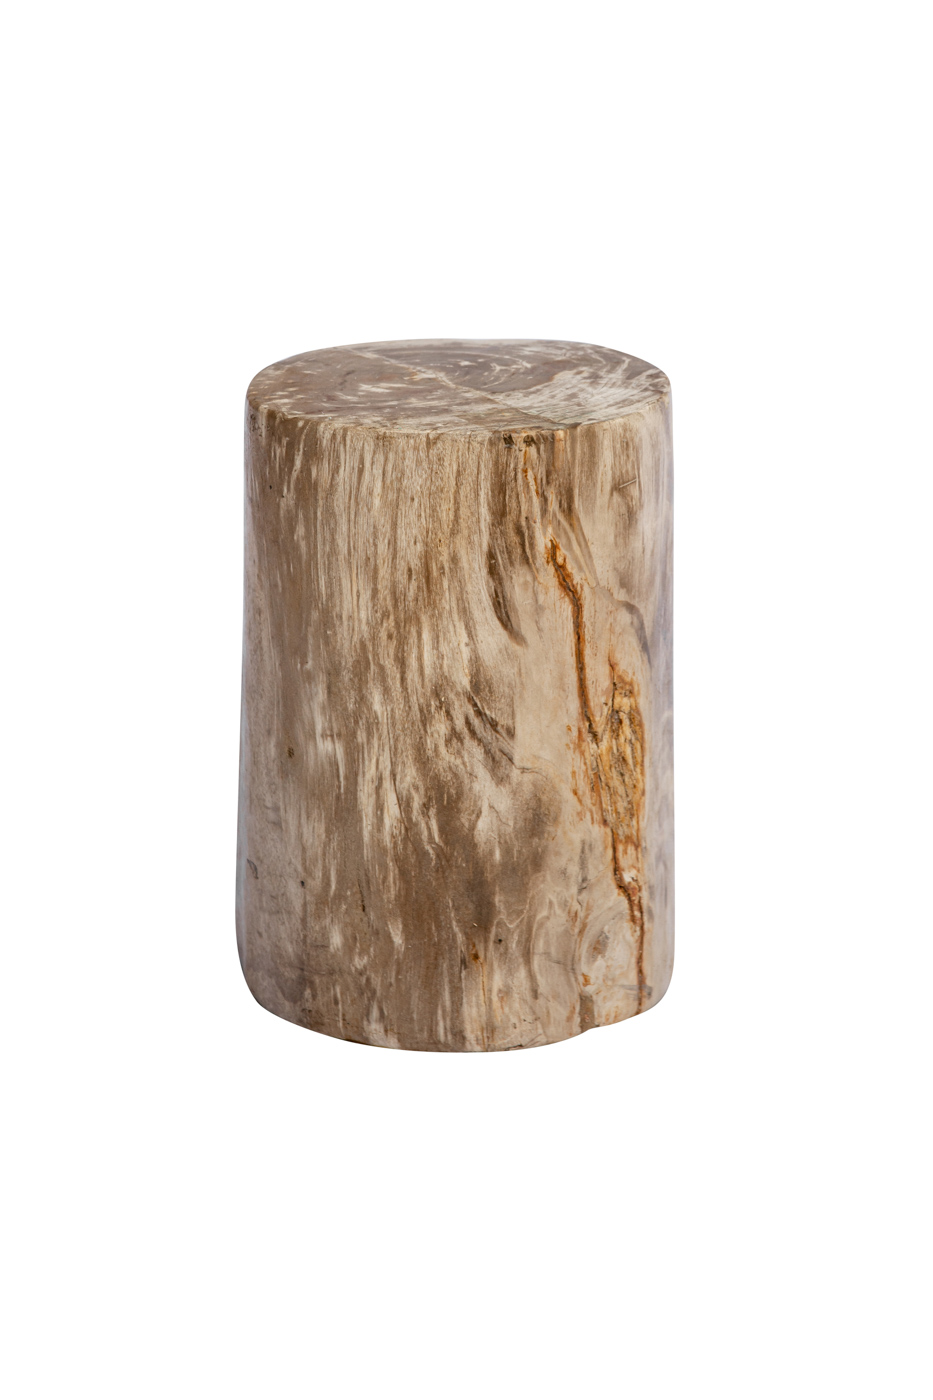 Natural fossilized wood log